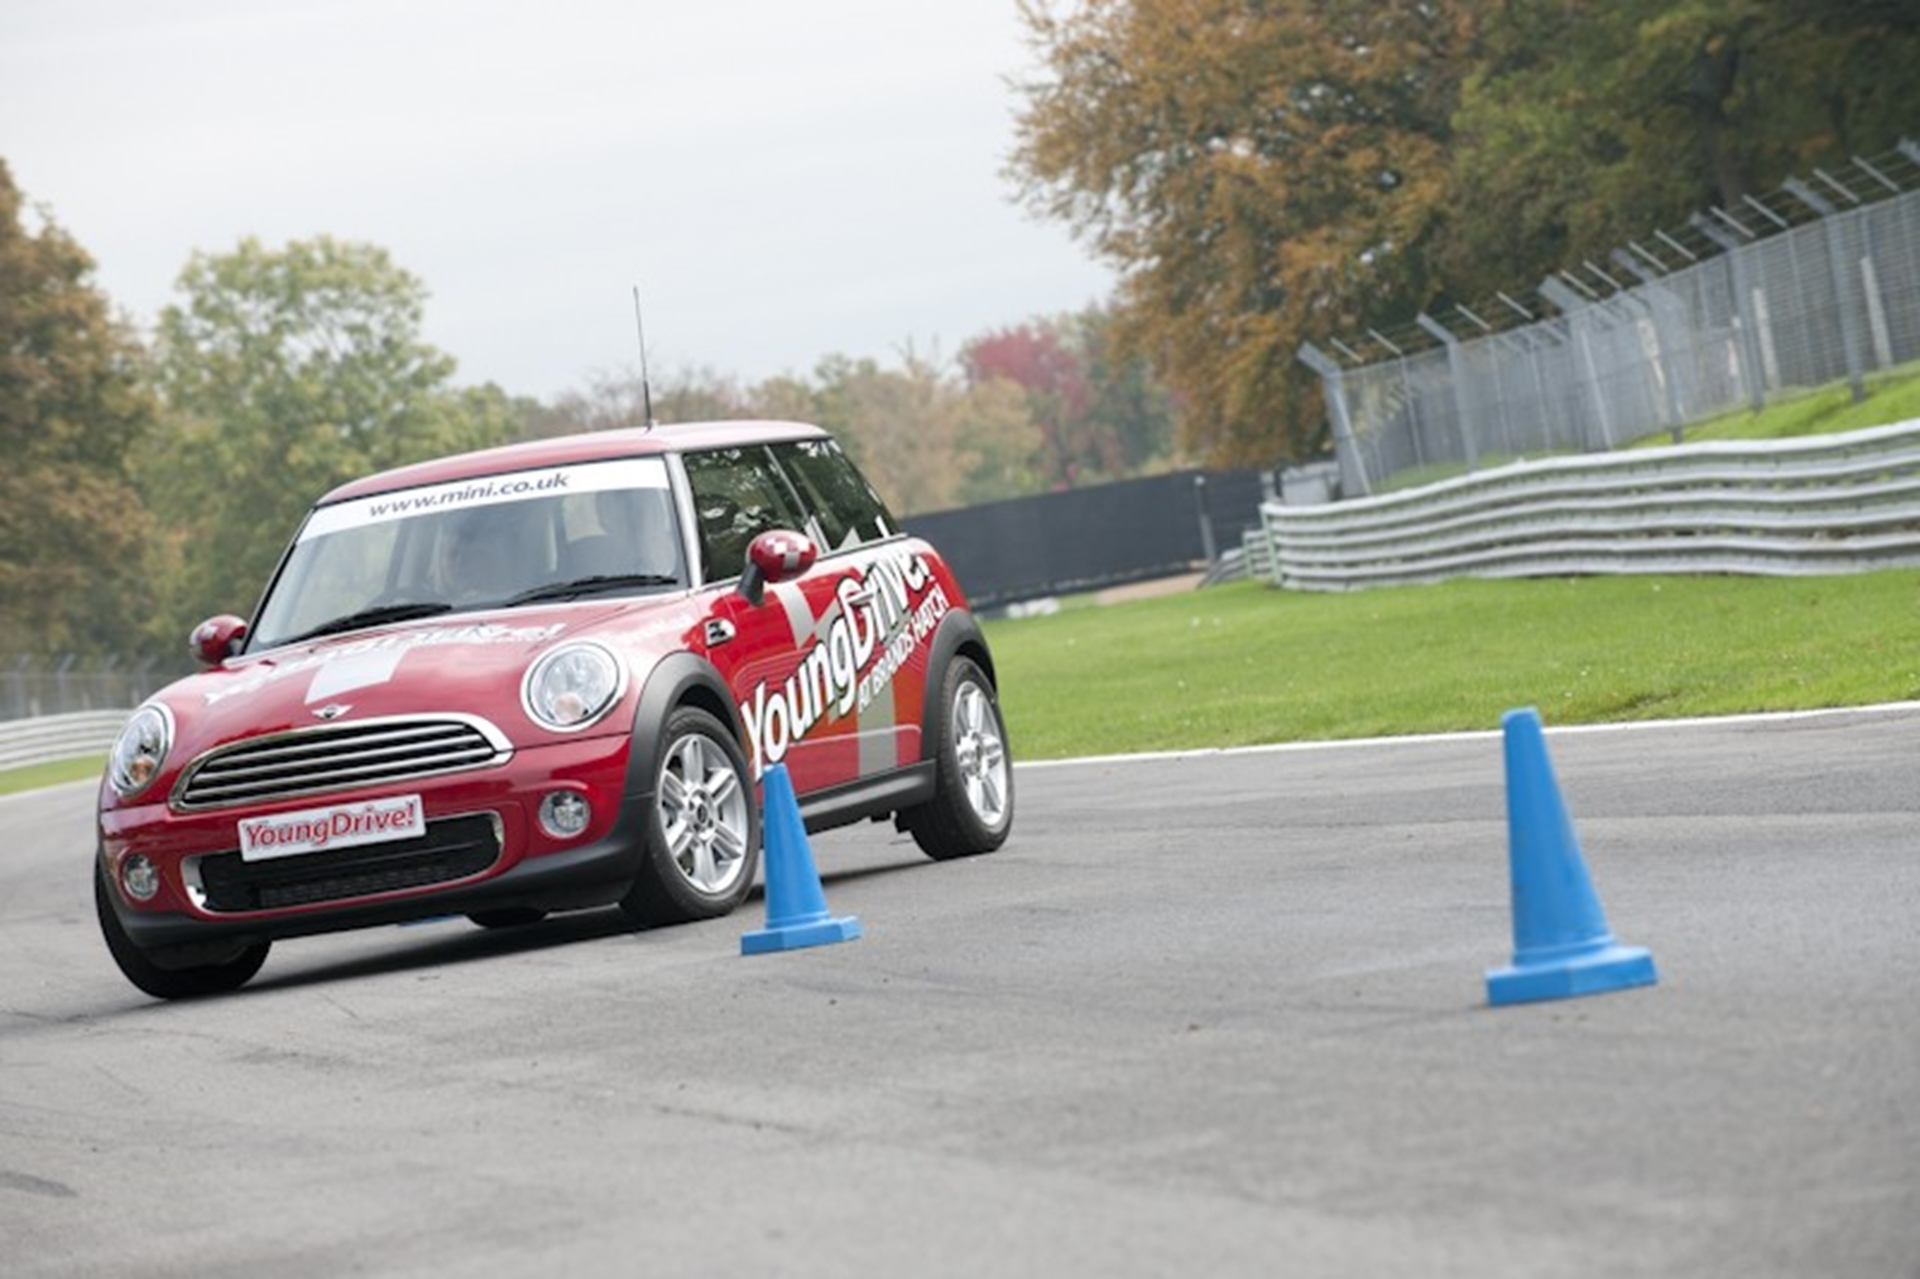 MINI takes youngsters out on the track with YoungDrive